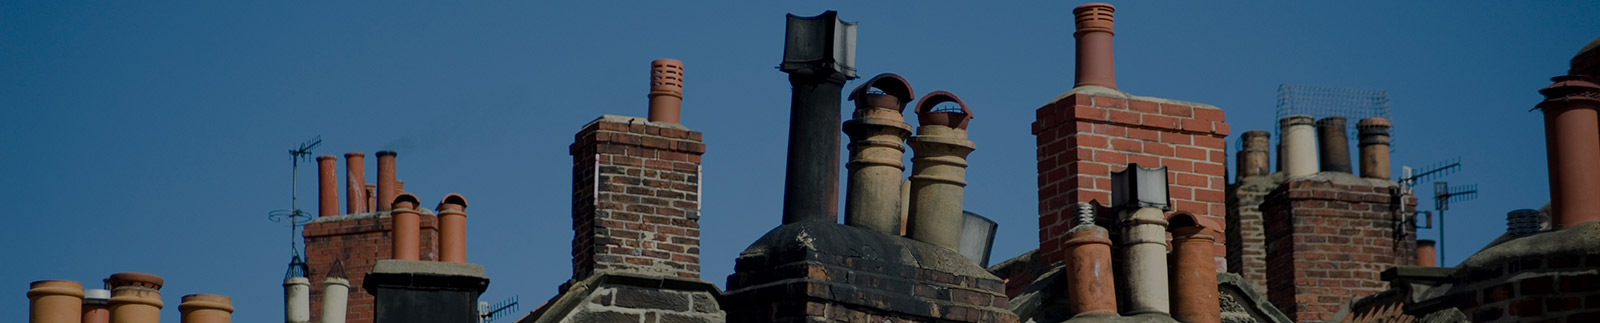 Chimney safety and maintenance for property owners